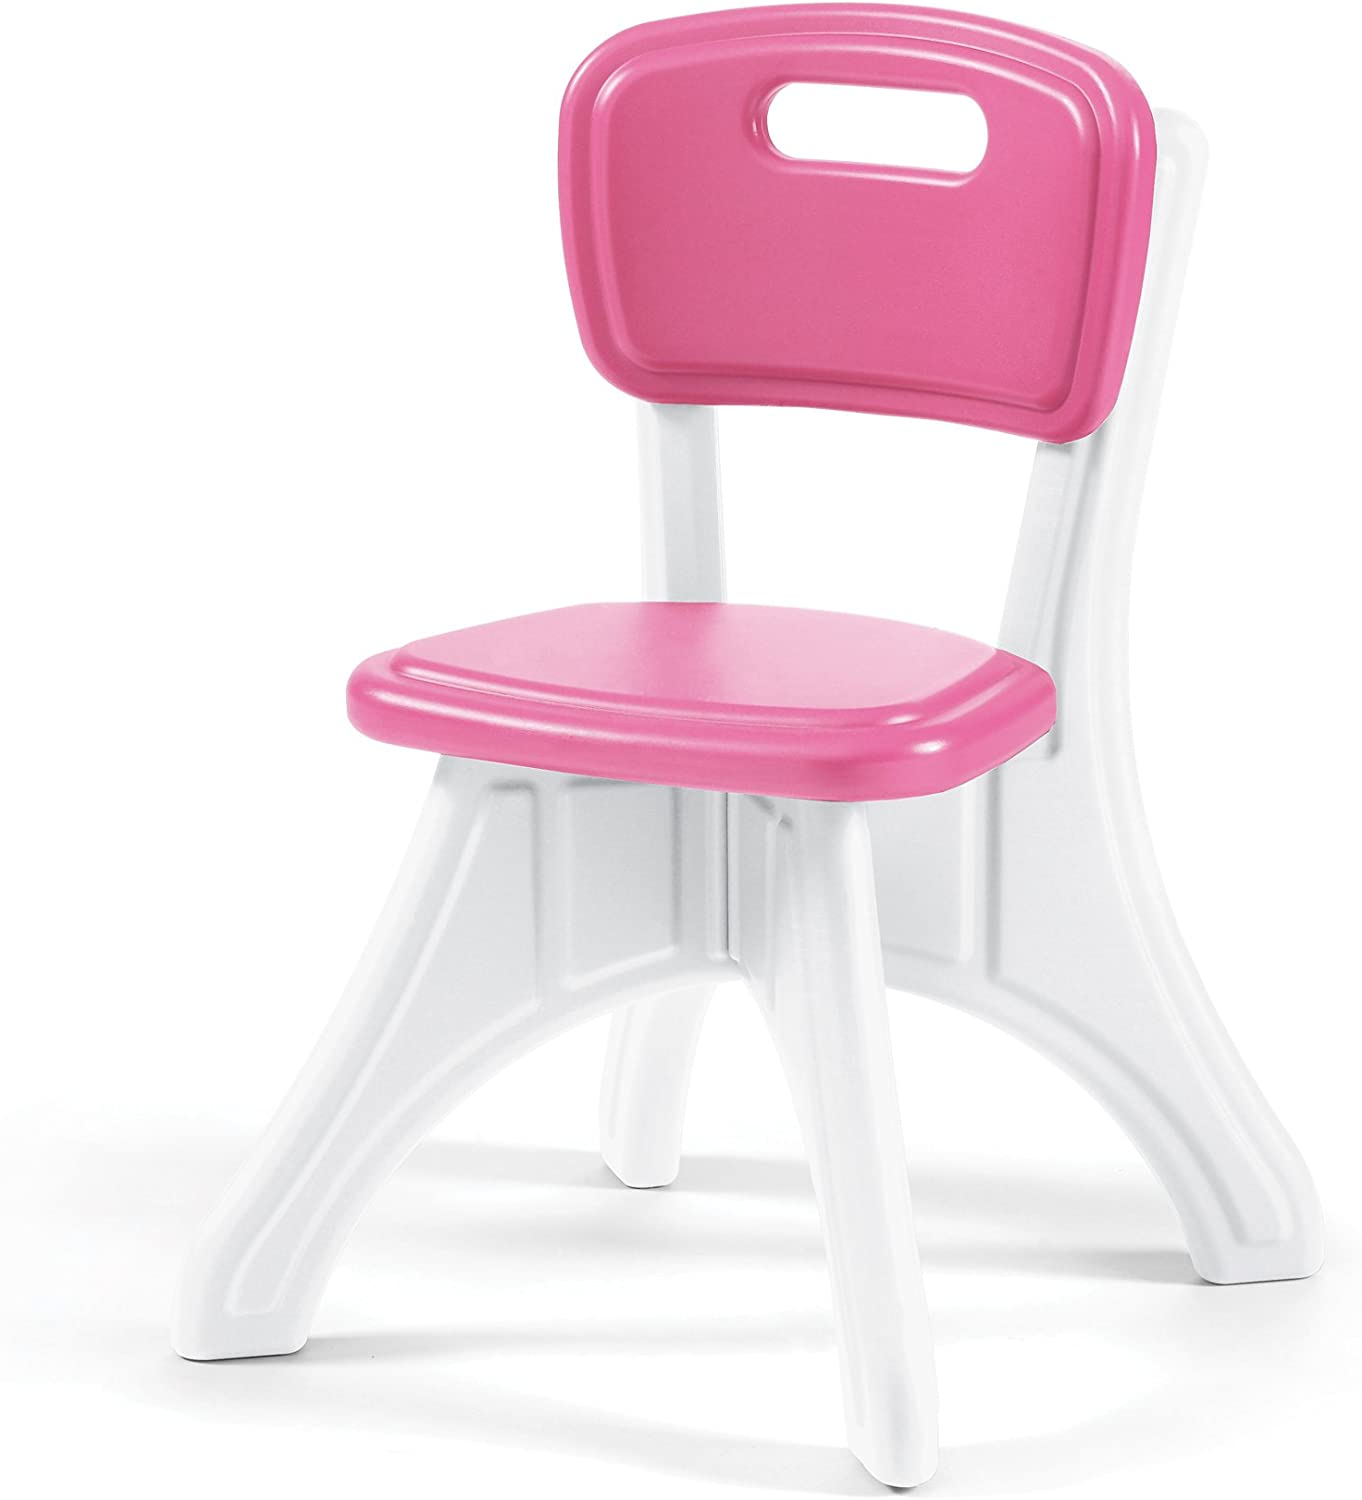 LifeStyle Kitchen Table and Chairs Set   9 Pcs   Pink